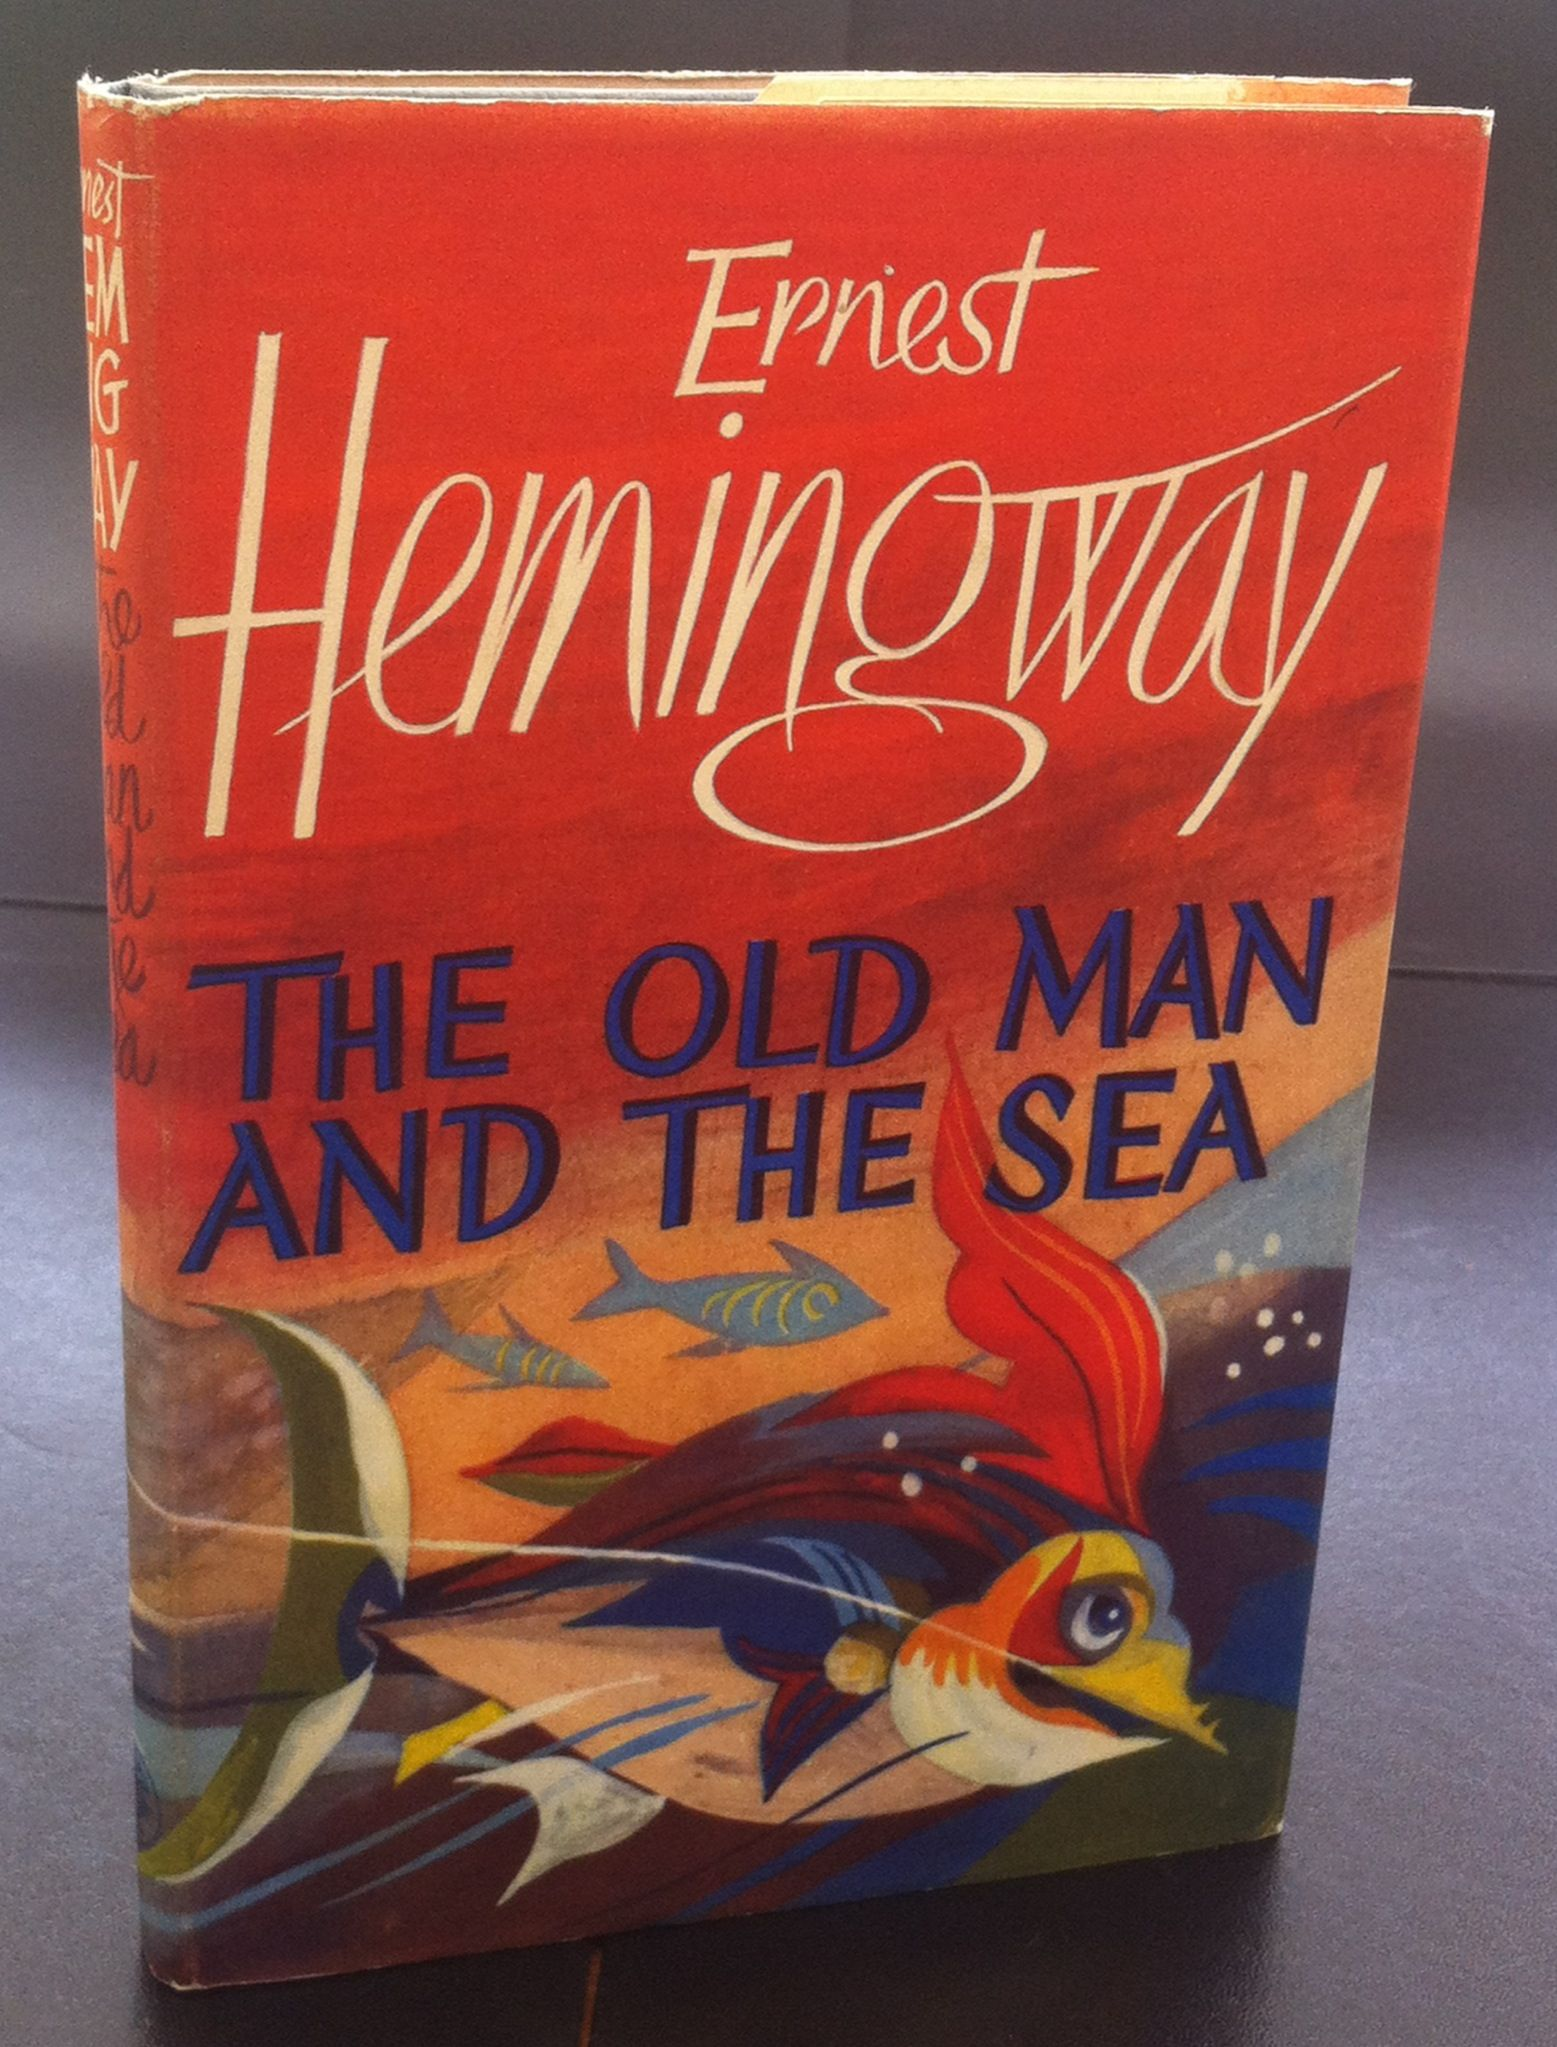 a comprehensive analysis of the old man and the sea by ernest hemingway The old man and the sea is a short novel (novella) about an elderly cuban   ernest hemingway is believed to have based the plot of the old man and the sea  on a story  however, this straightforward style often conveys complex themes  in.